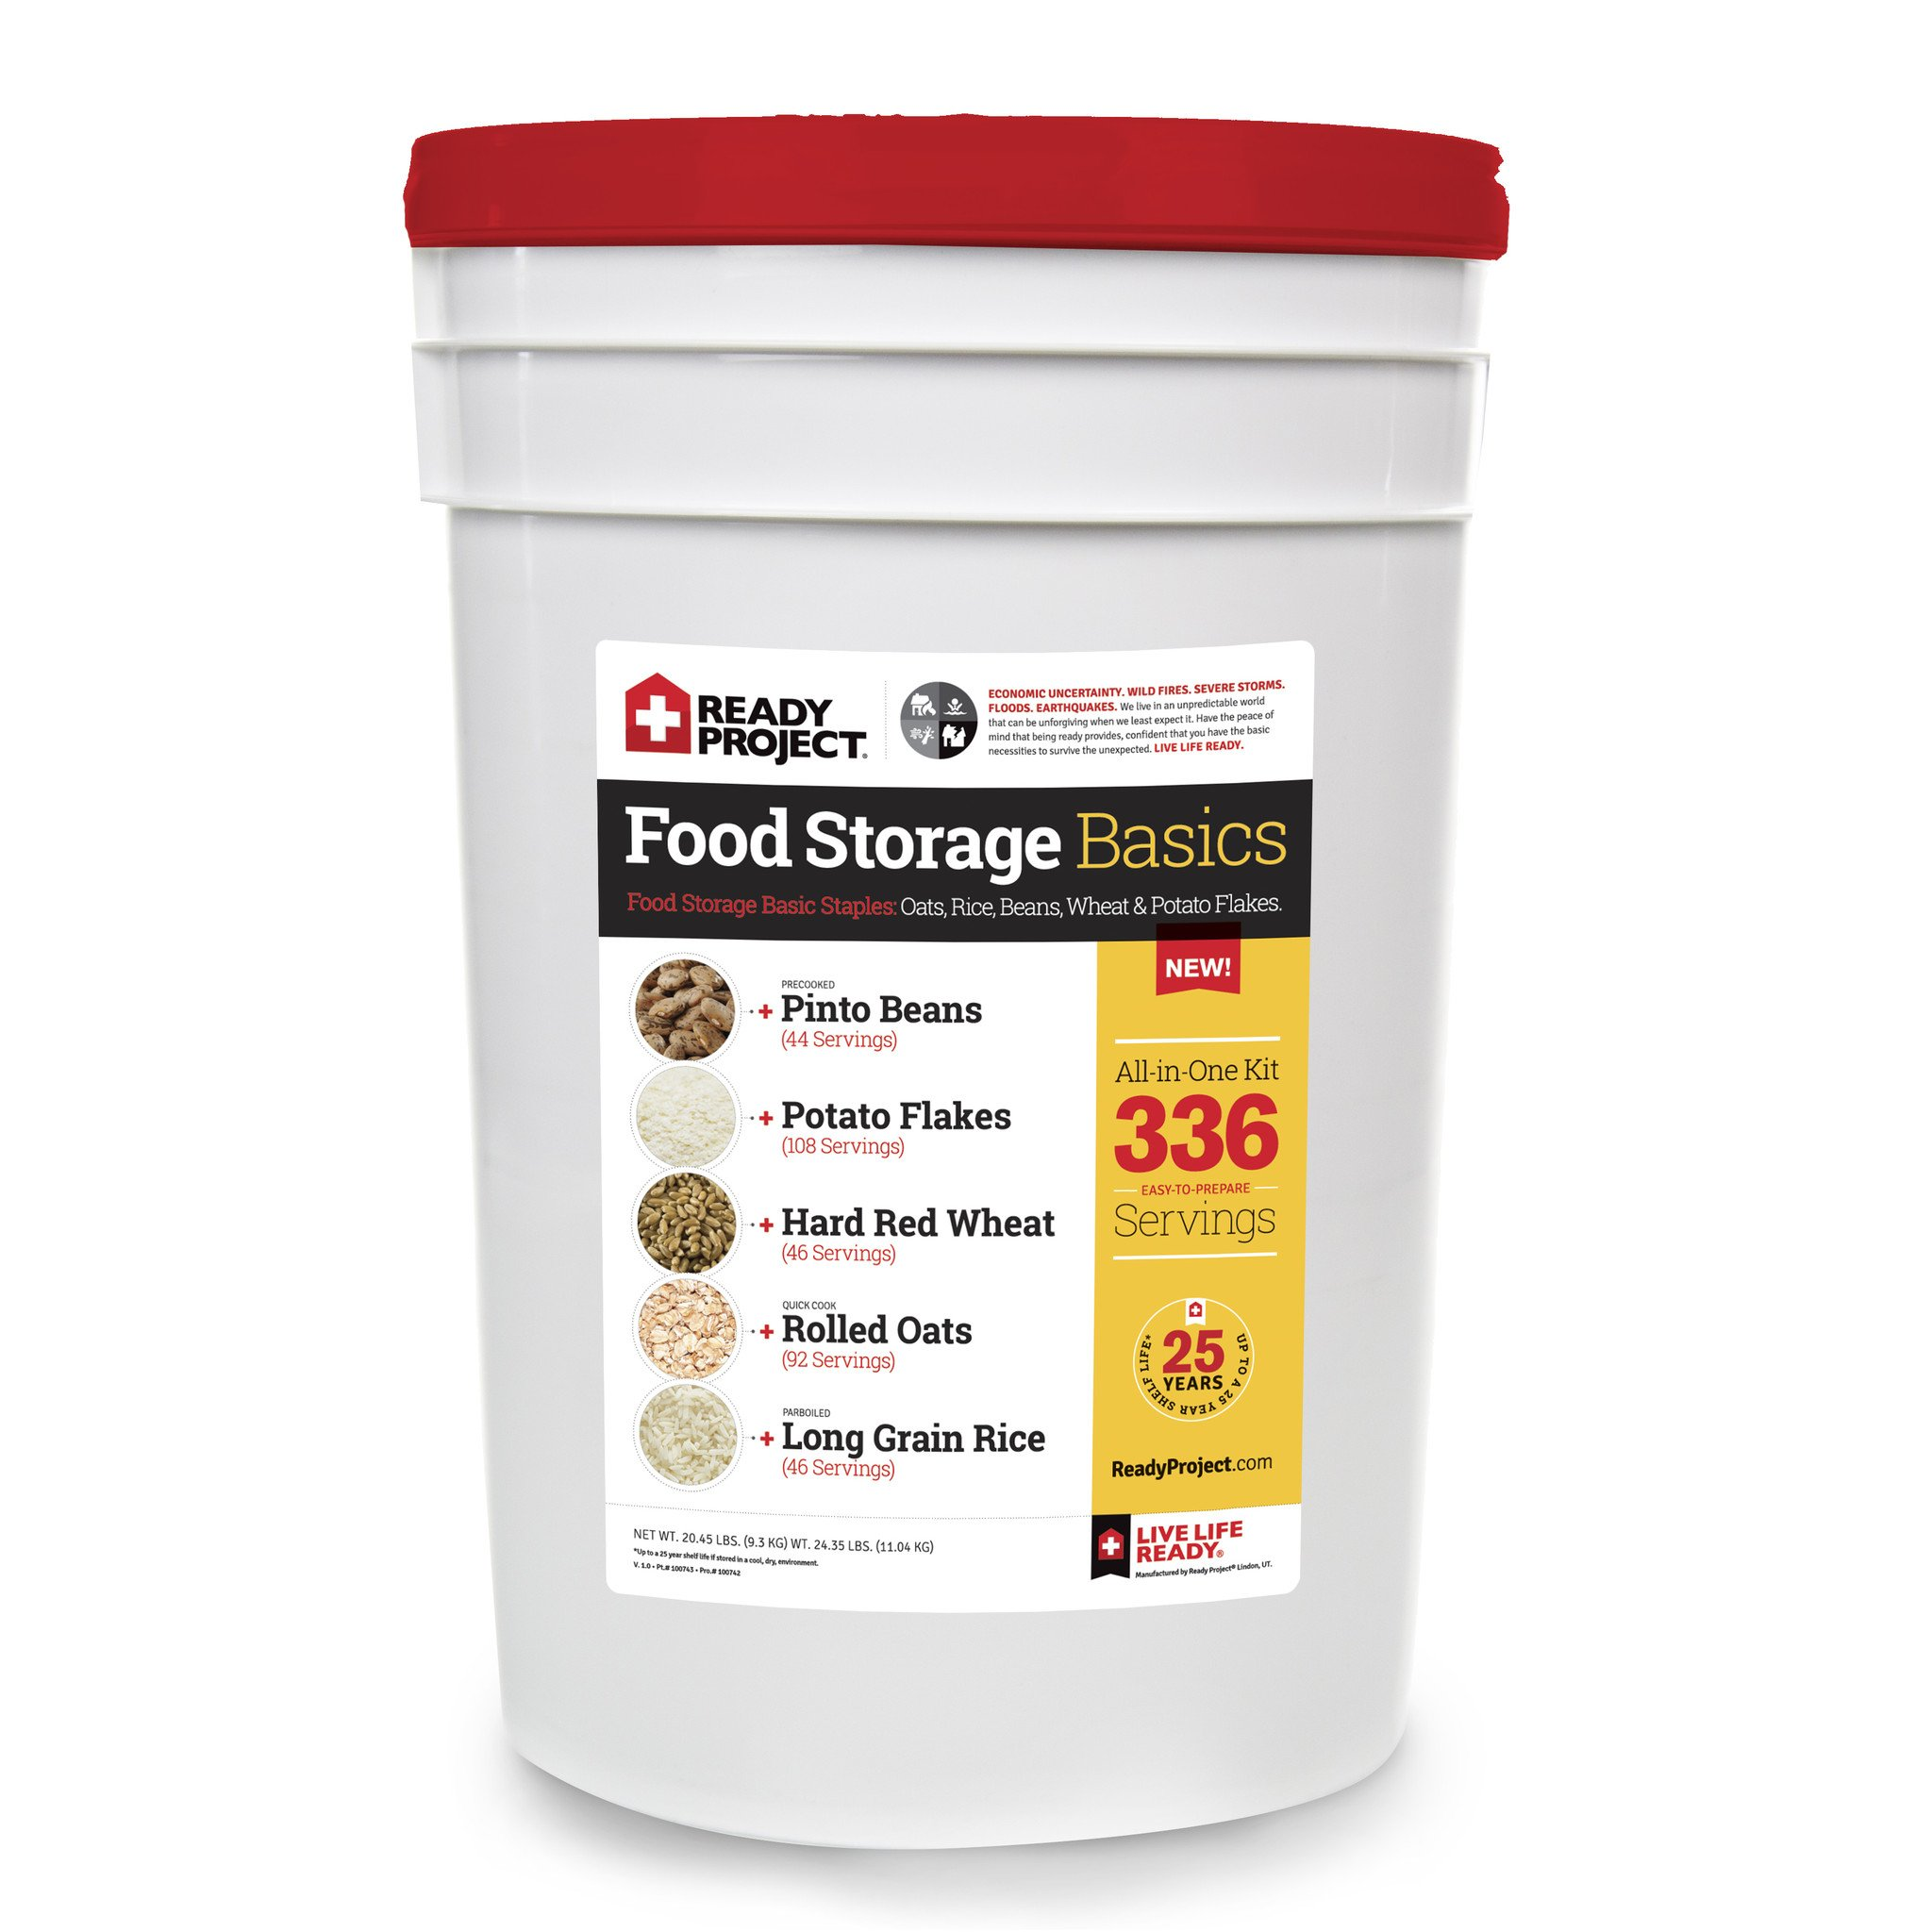 Food Storage Basics Supply Bucket - 336 Servings by Ready Project